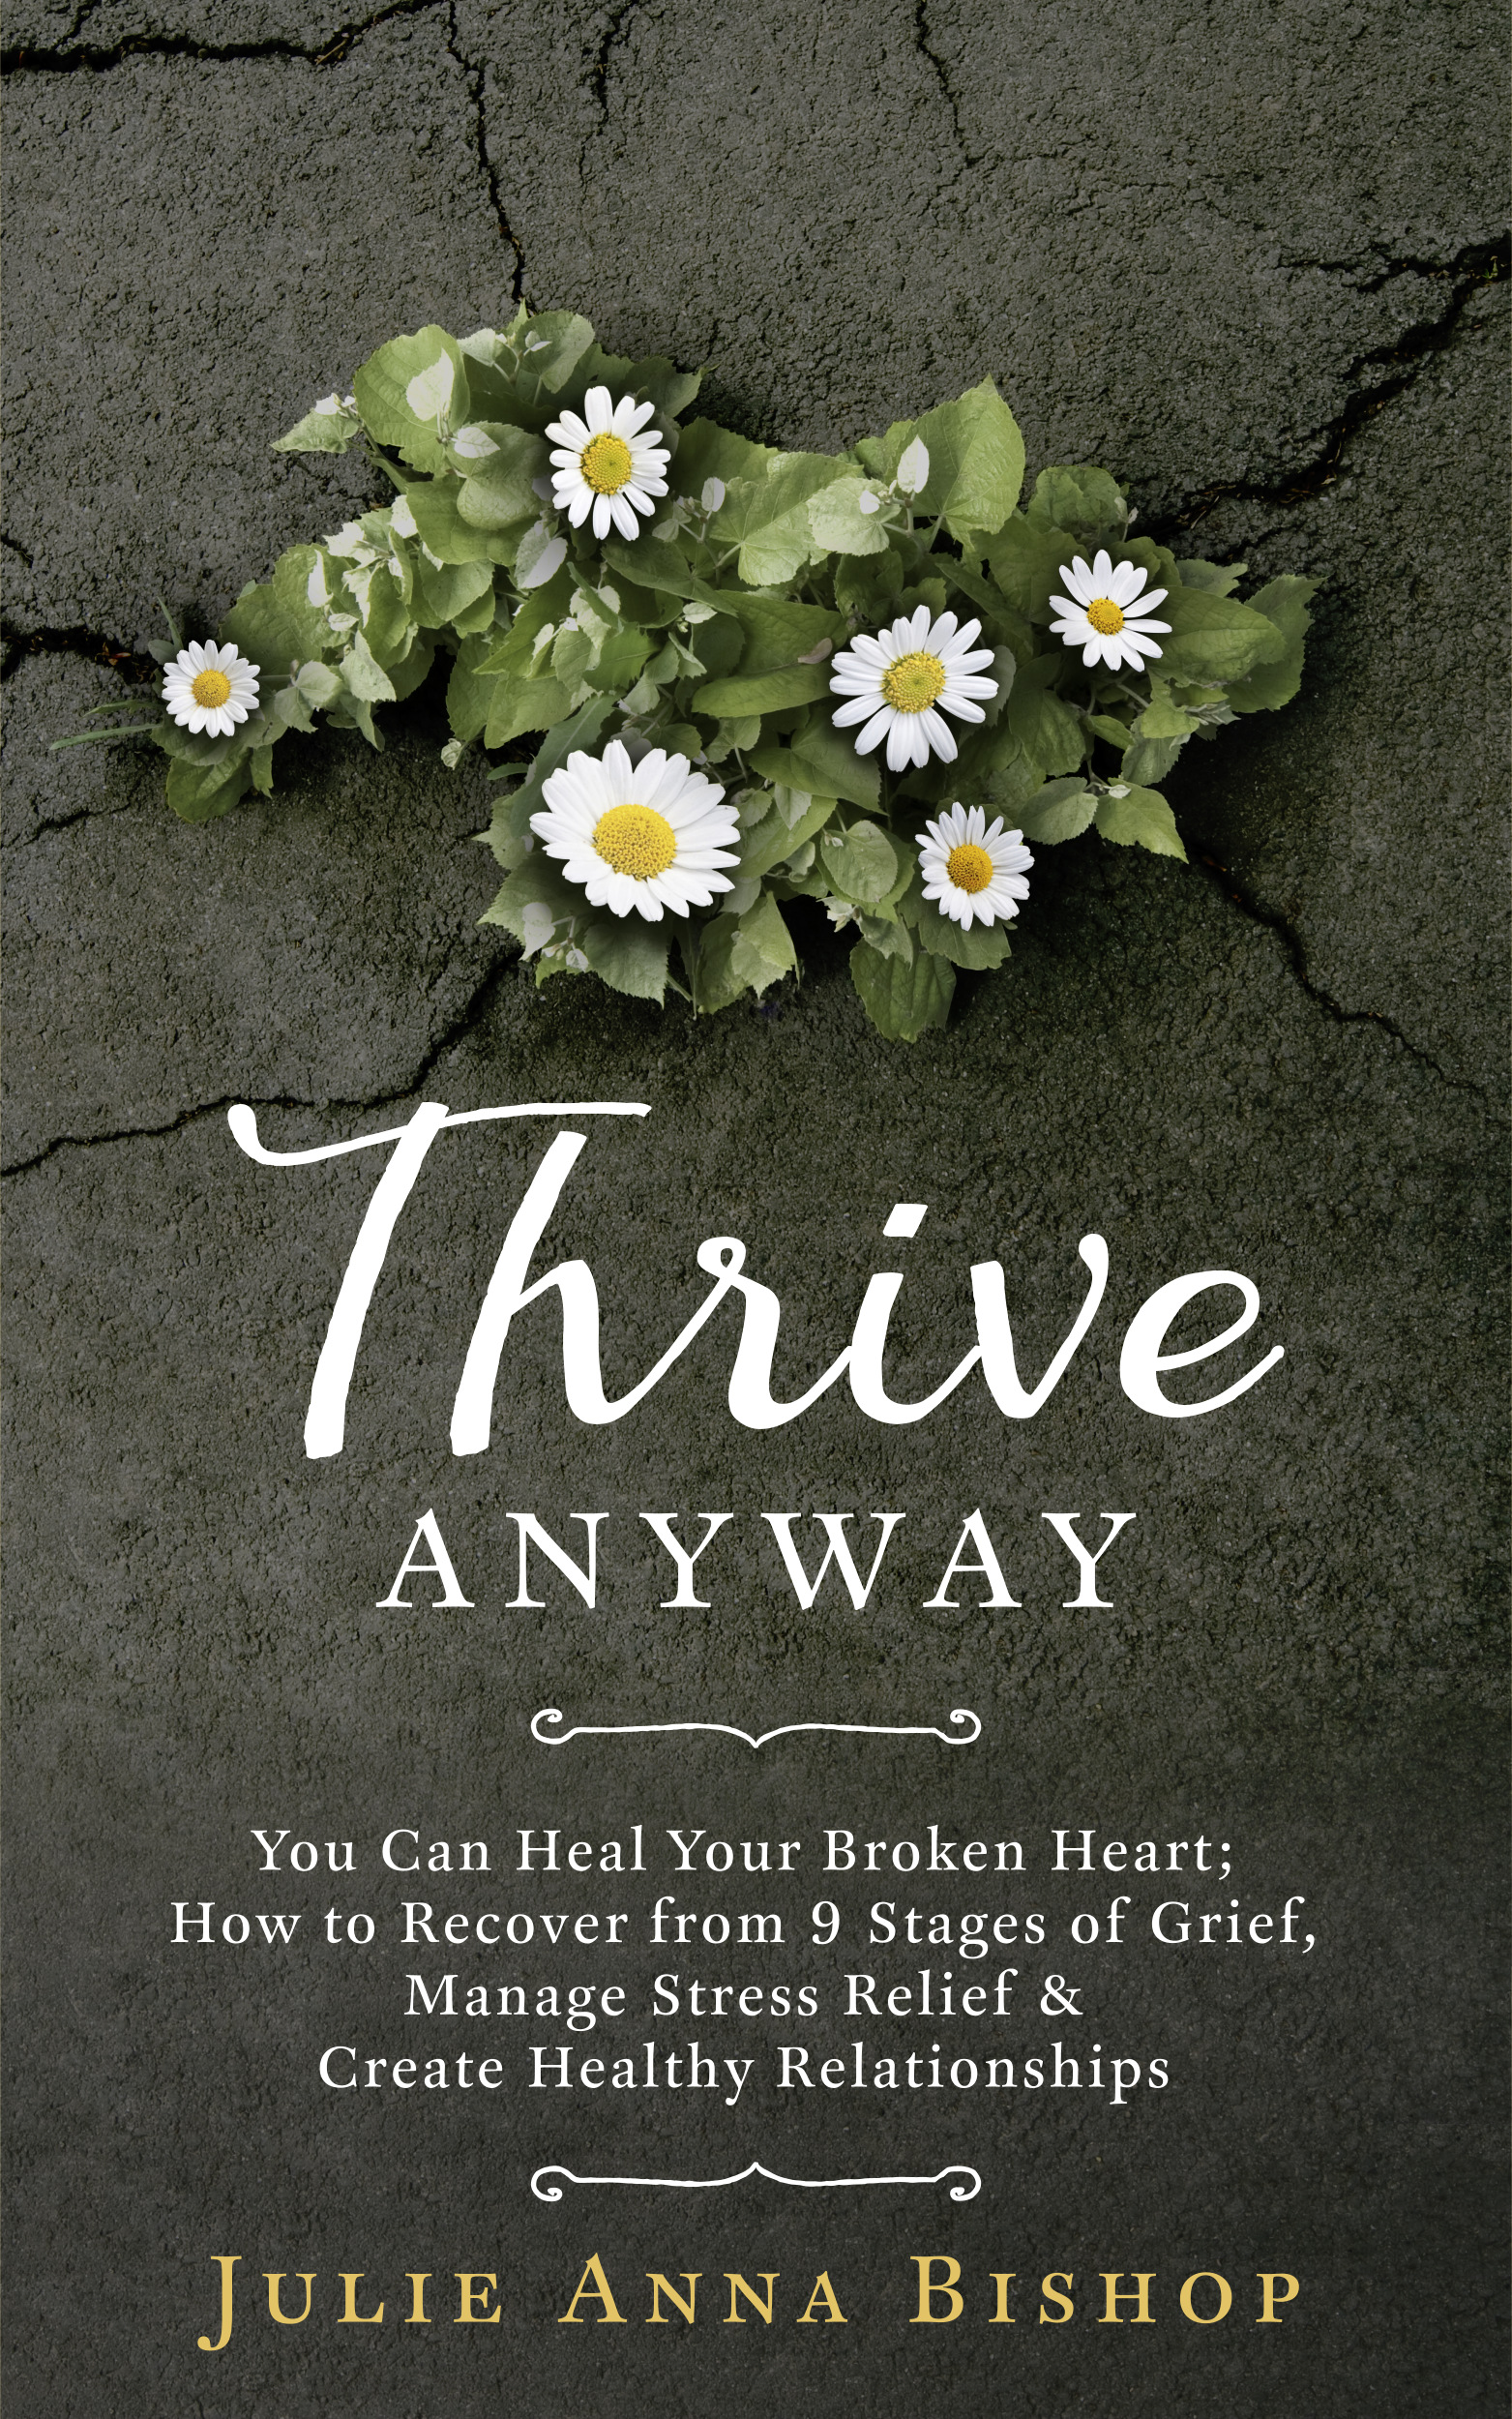 Thrive Anyway by Julie Anna Bishop